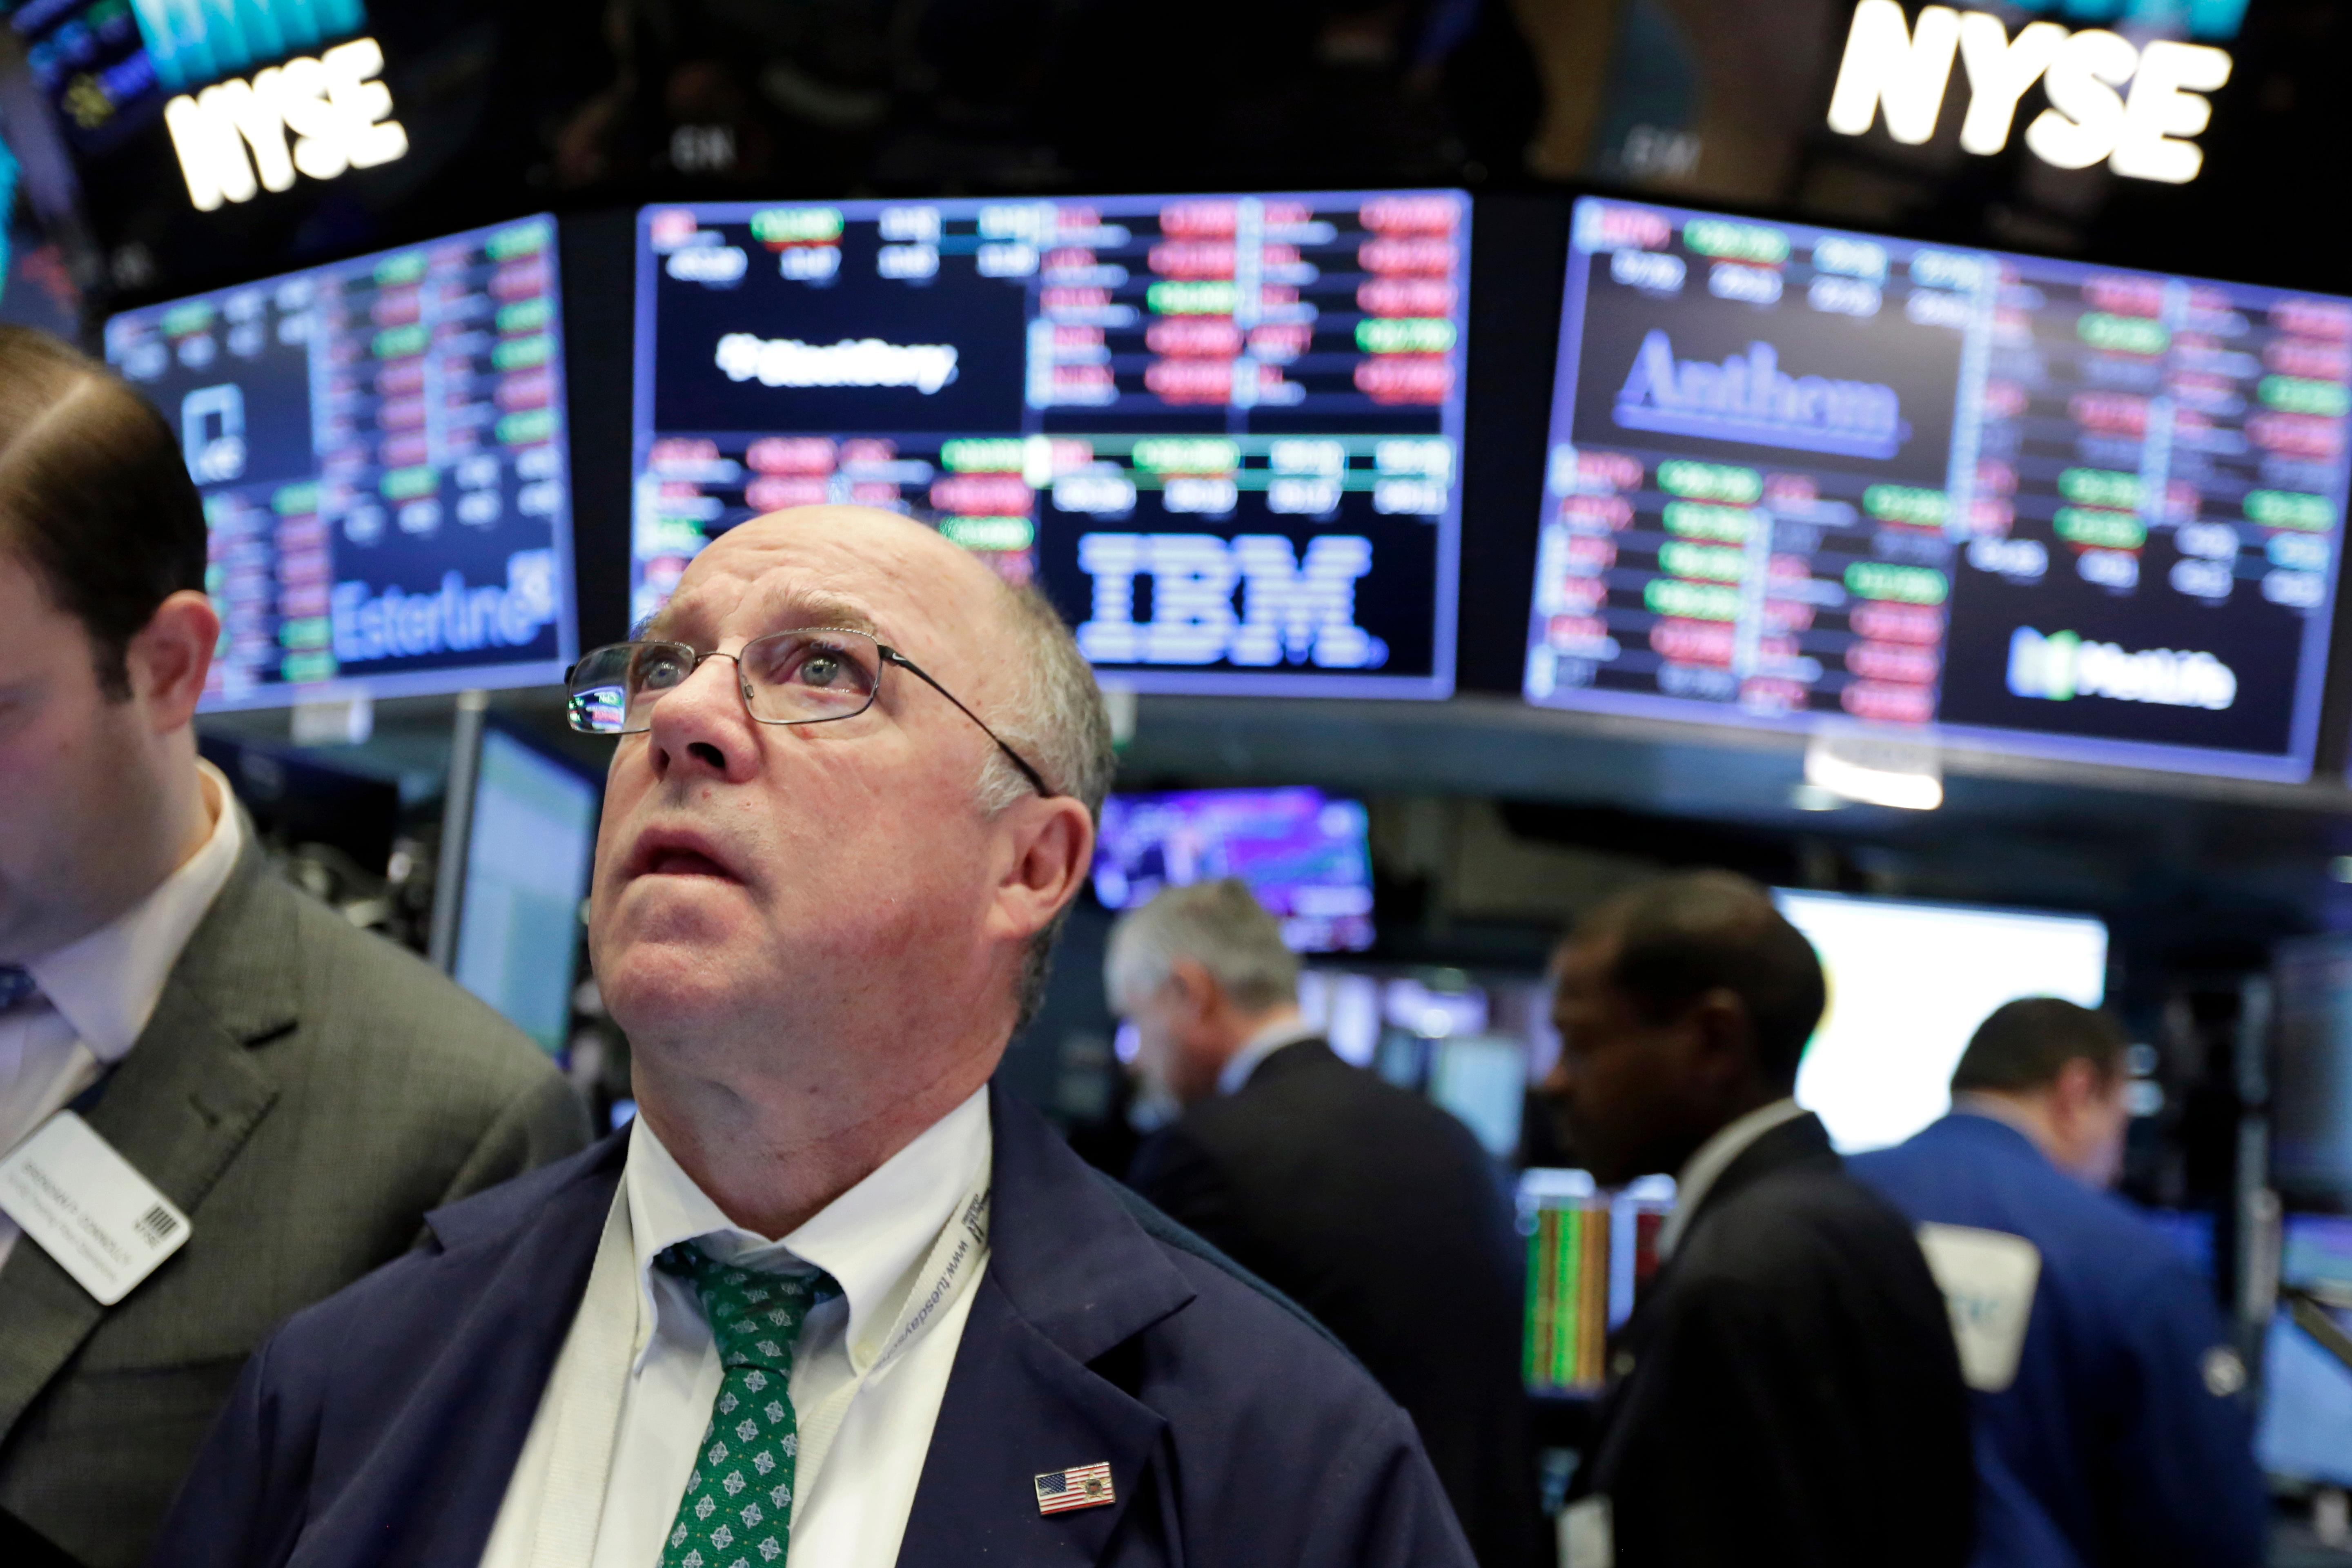 Trader Frederick Reimer works on the floor of the New York Stock Exchange, Tuesday, Feb. 6, 2018. The Dow Jones industrial average fell as much as 500 points in early trading, bringing the index down 10 percent from the record high it reached on Jan. 26.{&amp;nbsp;} (AP Photo/Richard Drew)<p></p>